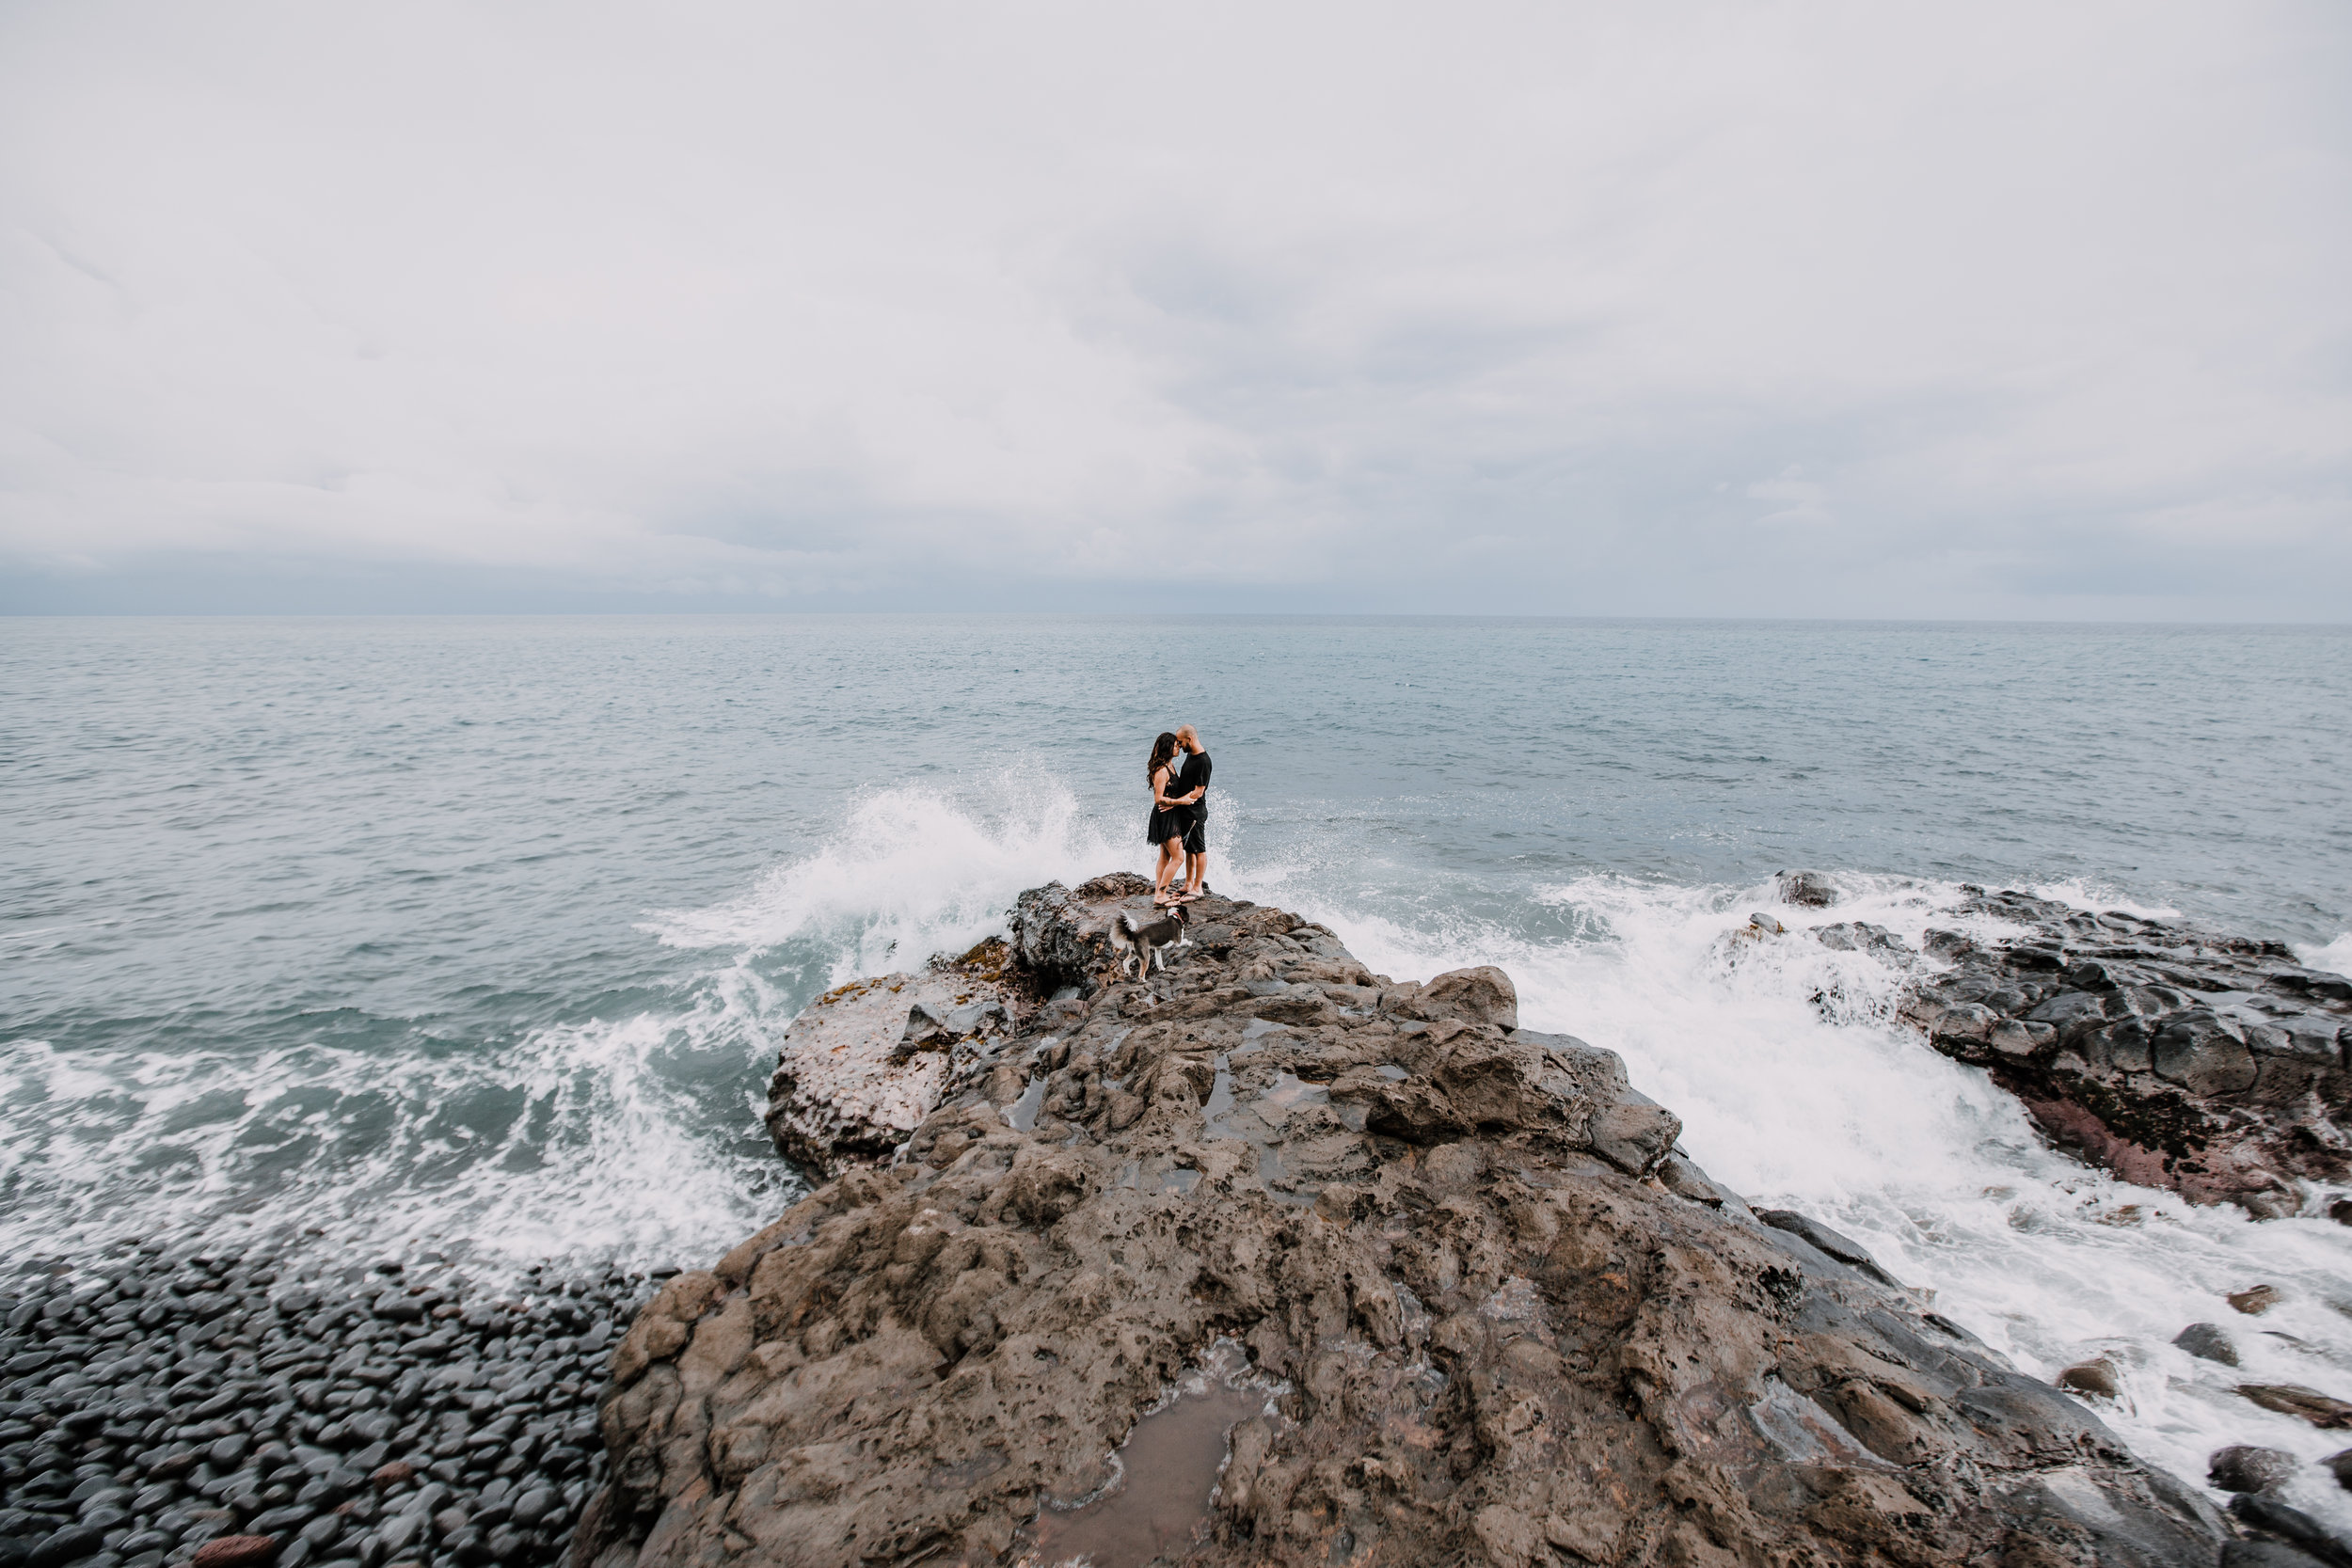 kaupo beach, hawaiian volcanic eruption, lava rock, haleakala national park, hawaii wedding photographer, hawaii elopement photographer, maui wedding, maui engagements, maui elopement